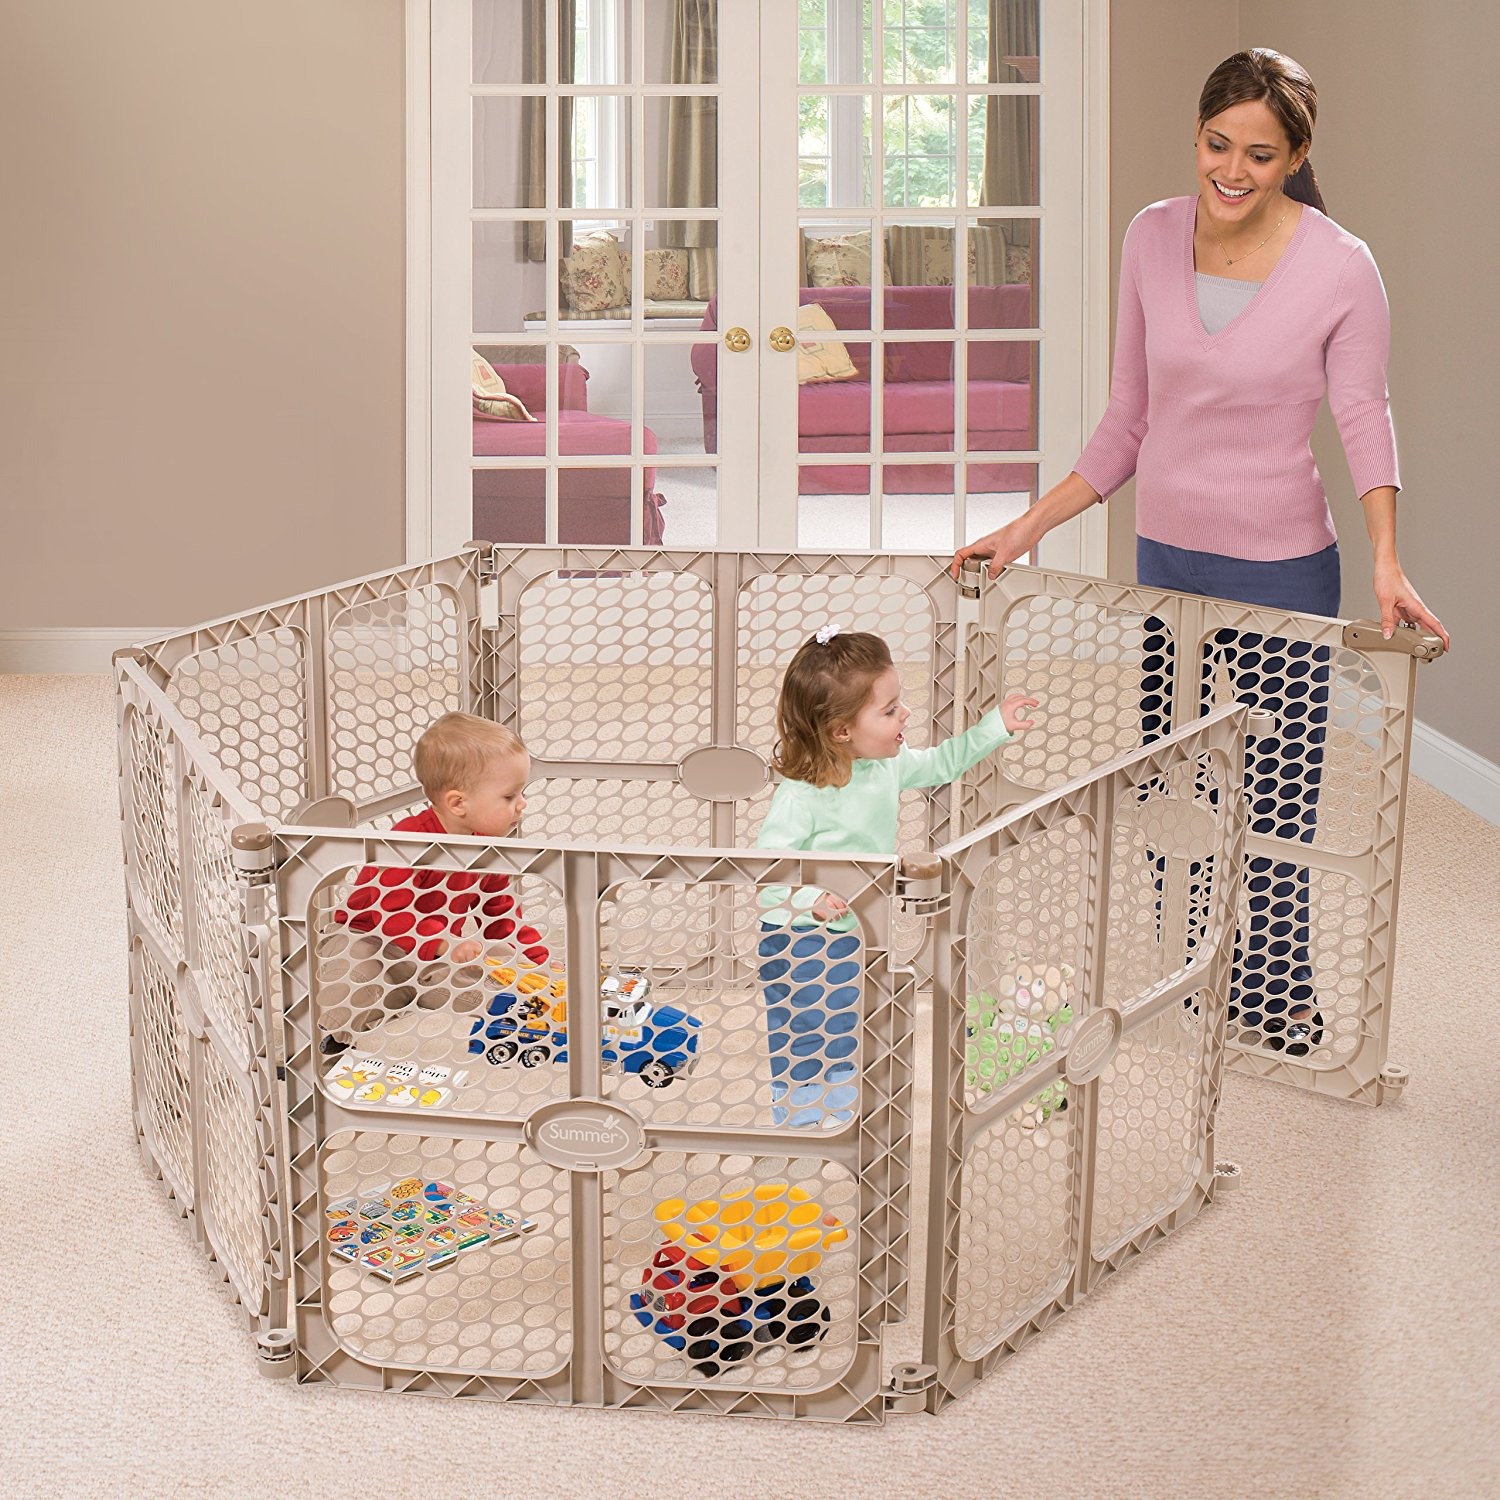 8 Panel Play Yard Gate | North States Superyard | Playyard Walmart